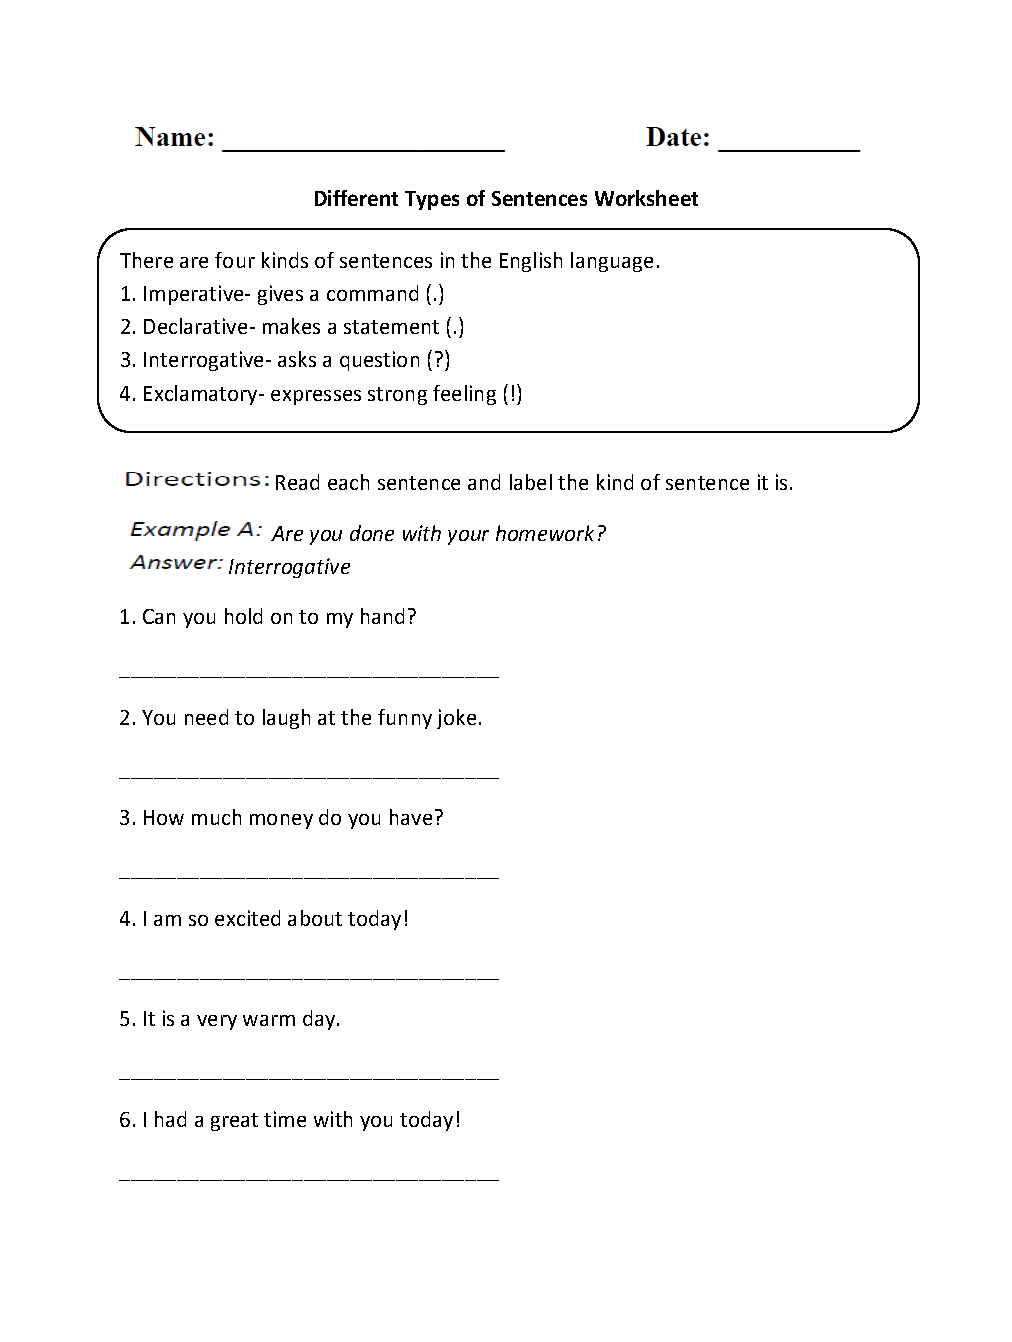 Free Worksheet Four Types Of Sentences Worksheet sentences worksheets types of different worksheet